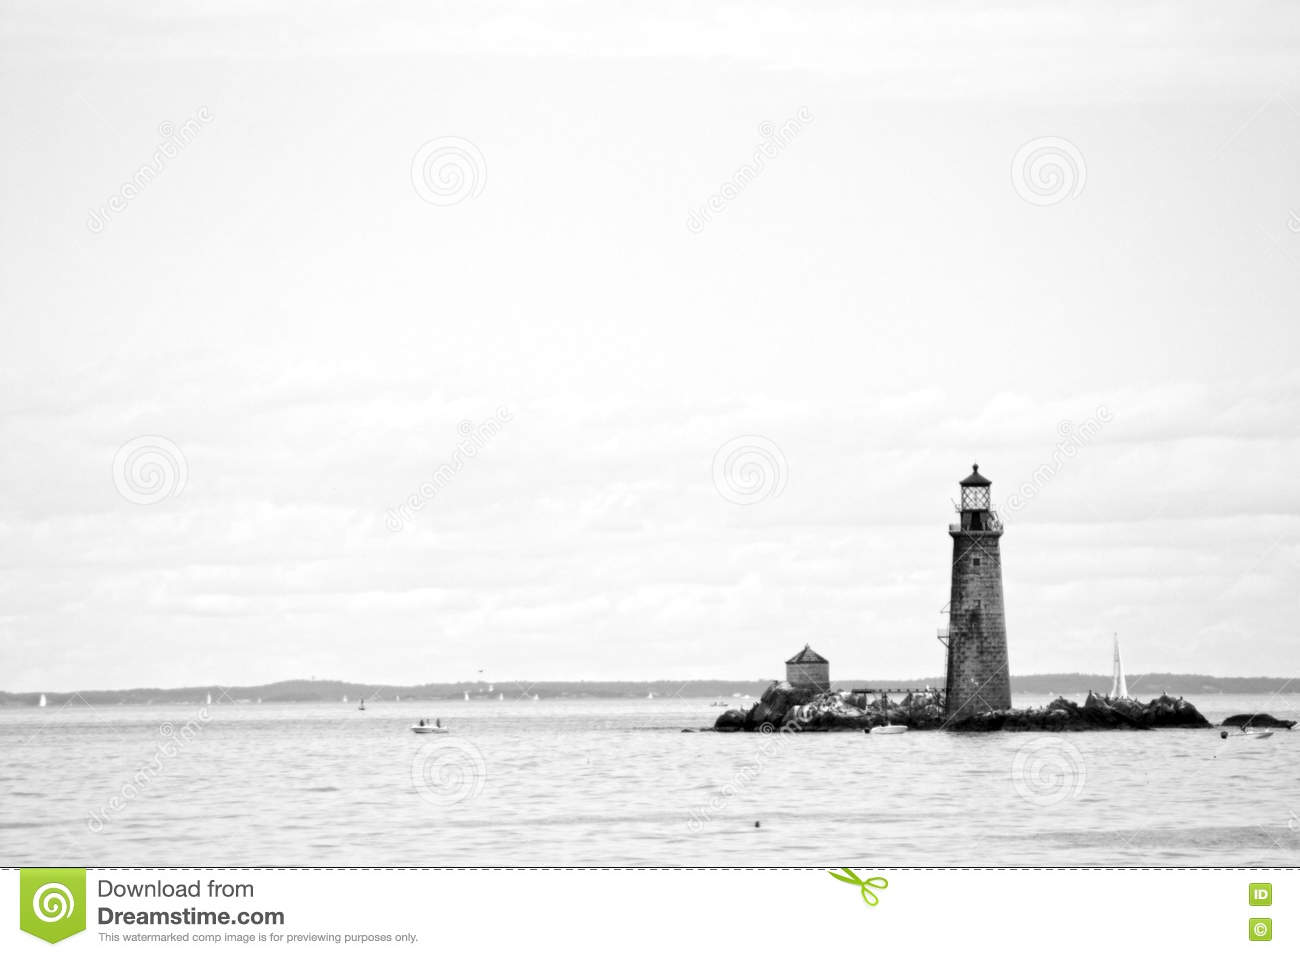 Boston Harbor lighthouse is the oldest lighthouse in New England.